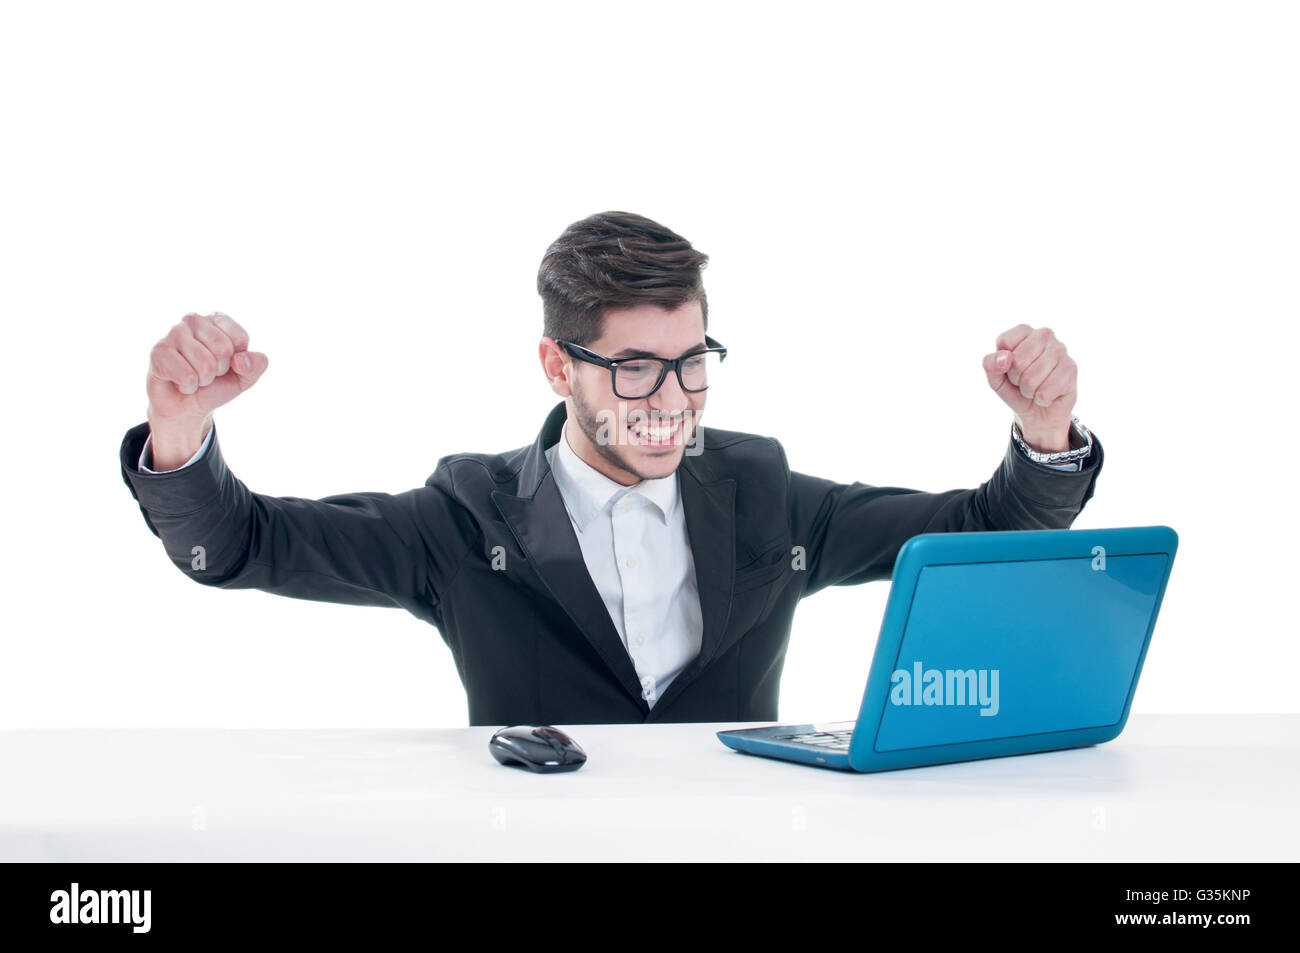 Young man with raised fists using laptop. Isolated on white background - Stock Image